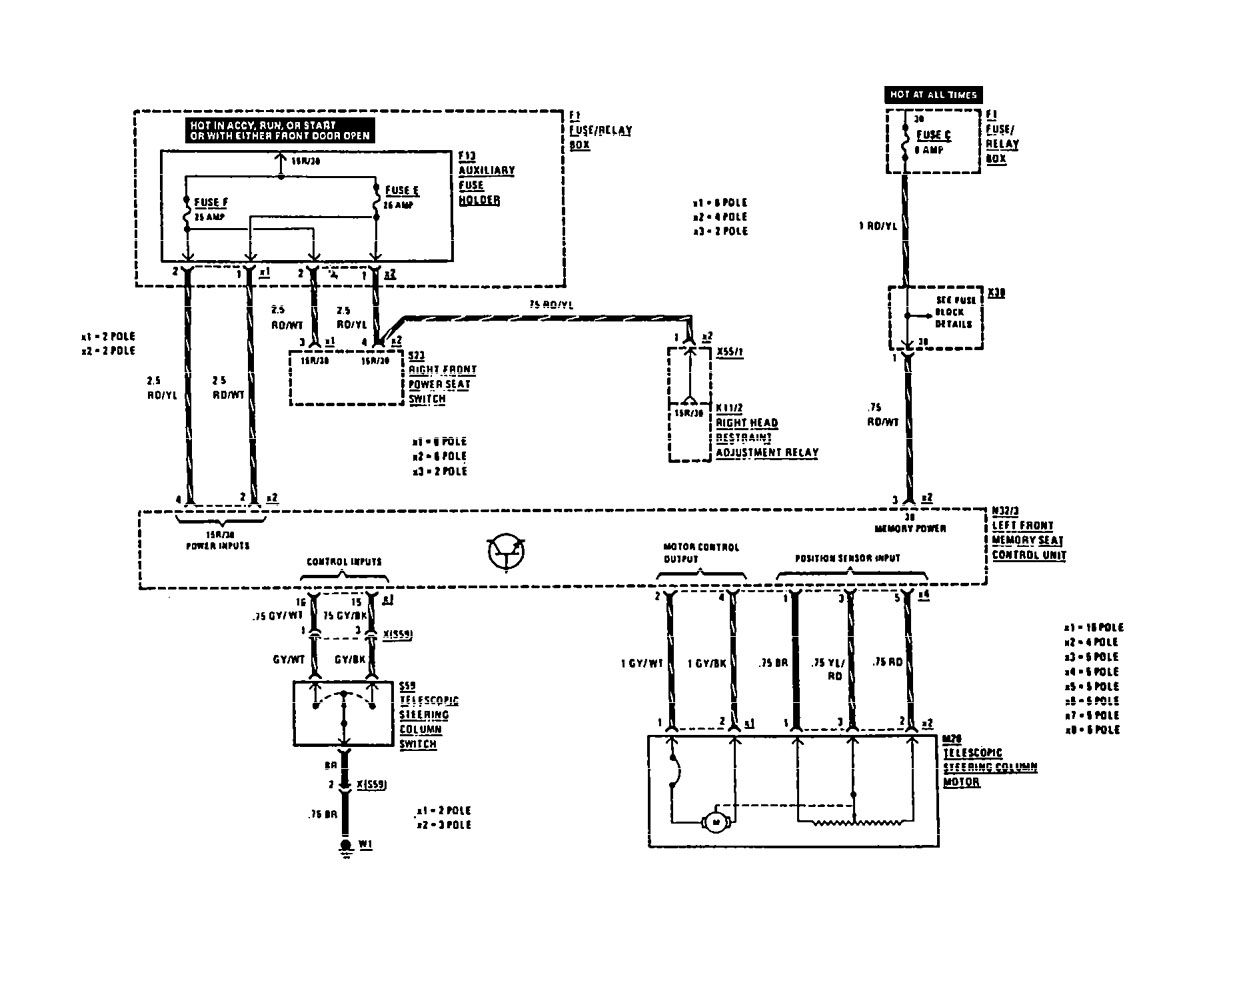 DIAGRAM] 2005 2500 Sprinter Van Wiring Diagram FULL Version HD Quality Wiring  Diagram - LOANREPUPDATE.OLTH-GUILD.FRloanrepupdate.olth-guild.fr